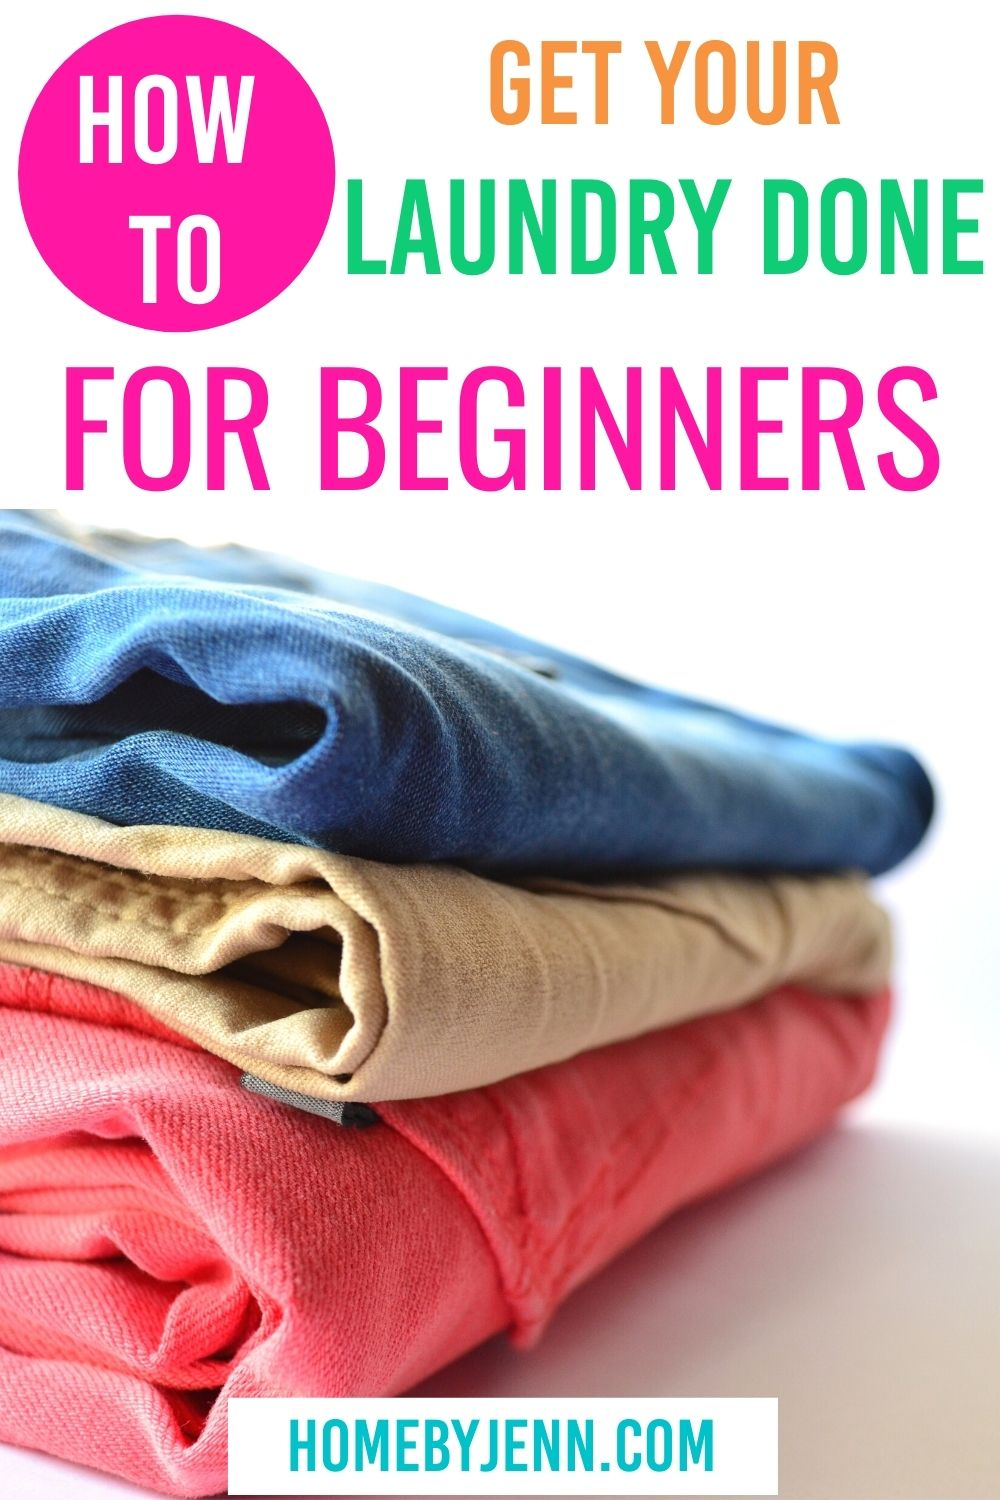 Learn the basic steps on how to do laundry the right way! From detergents to water temperatures and all things in between! Plus free checklist | #laundry #howto #basics #garment #clothing #care via @homebyjenn